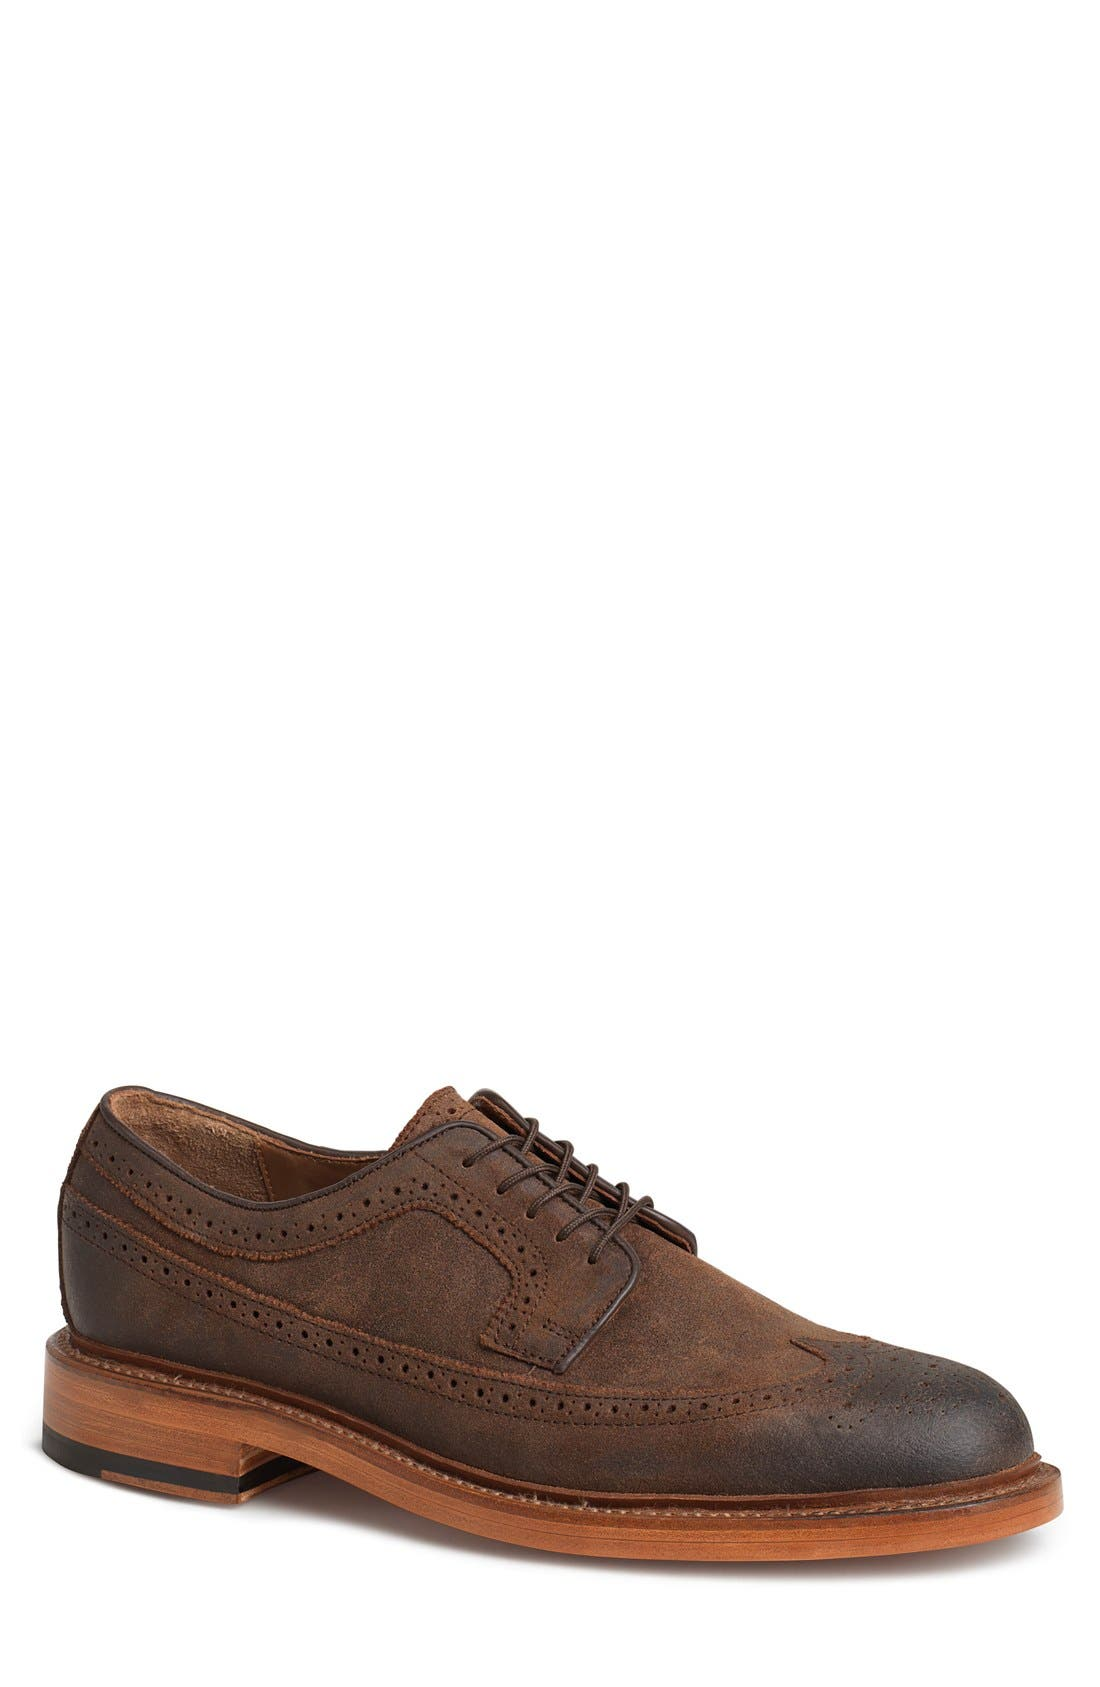 'Maddox' Wingtip,                         Main,                         color, Snuff Suede